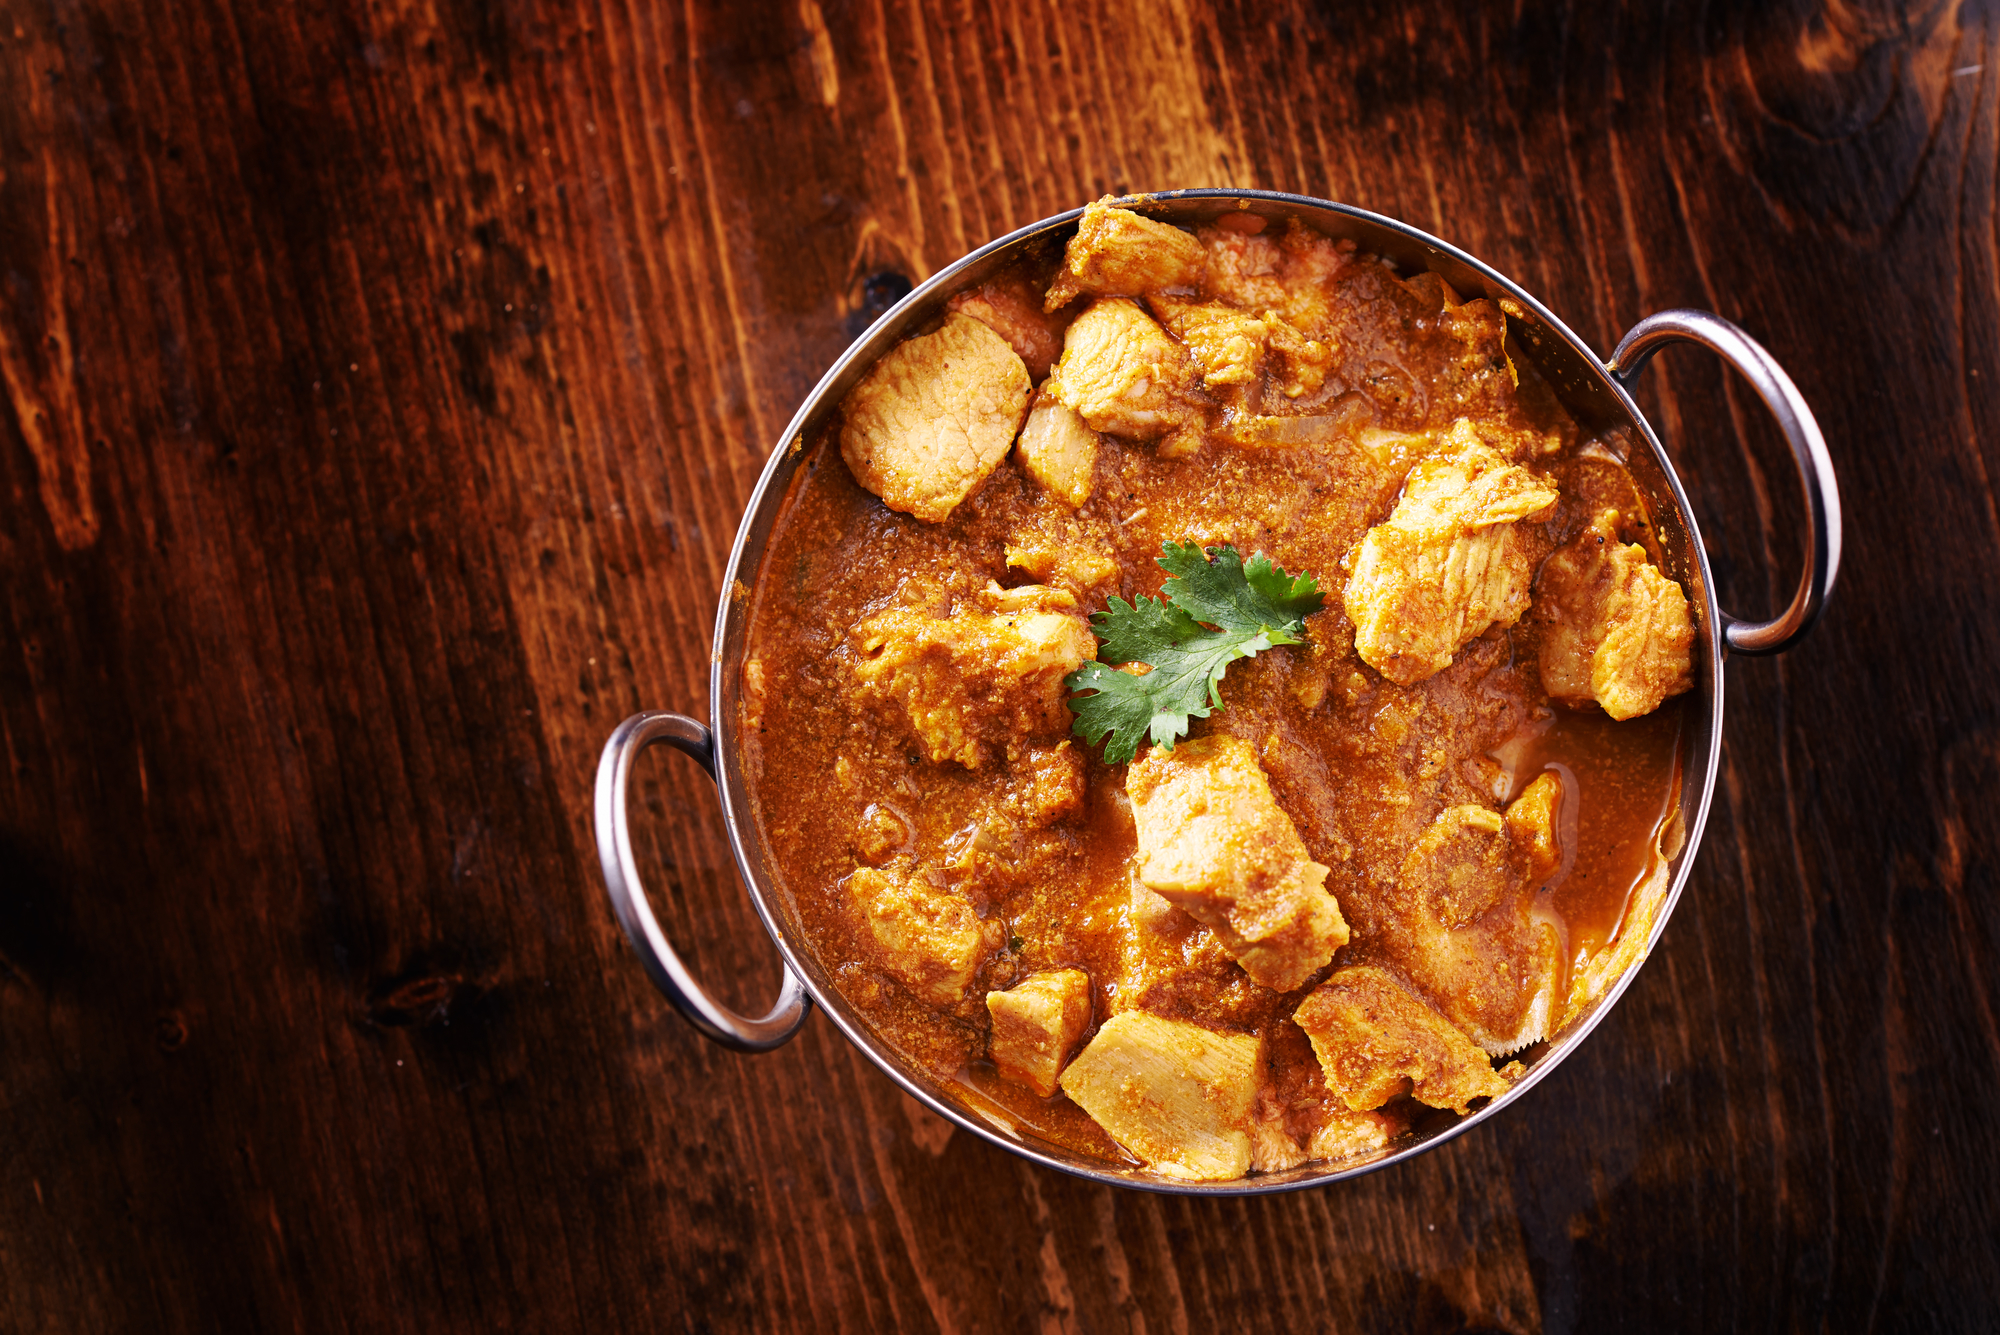 Instant Pot Butter Chicken – A Delicious and Simple 8 Minute Recipe (Paleo, Gluten Free)